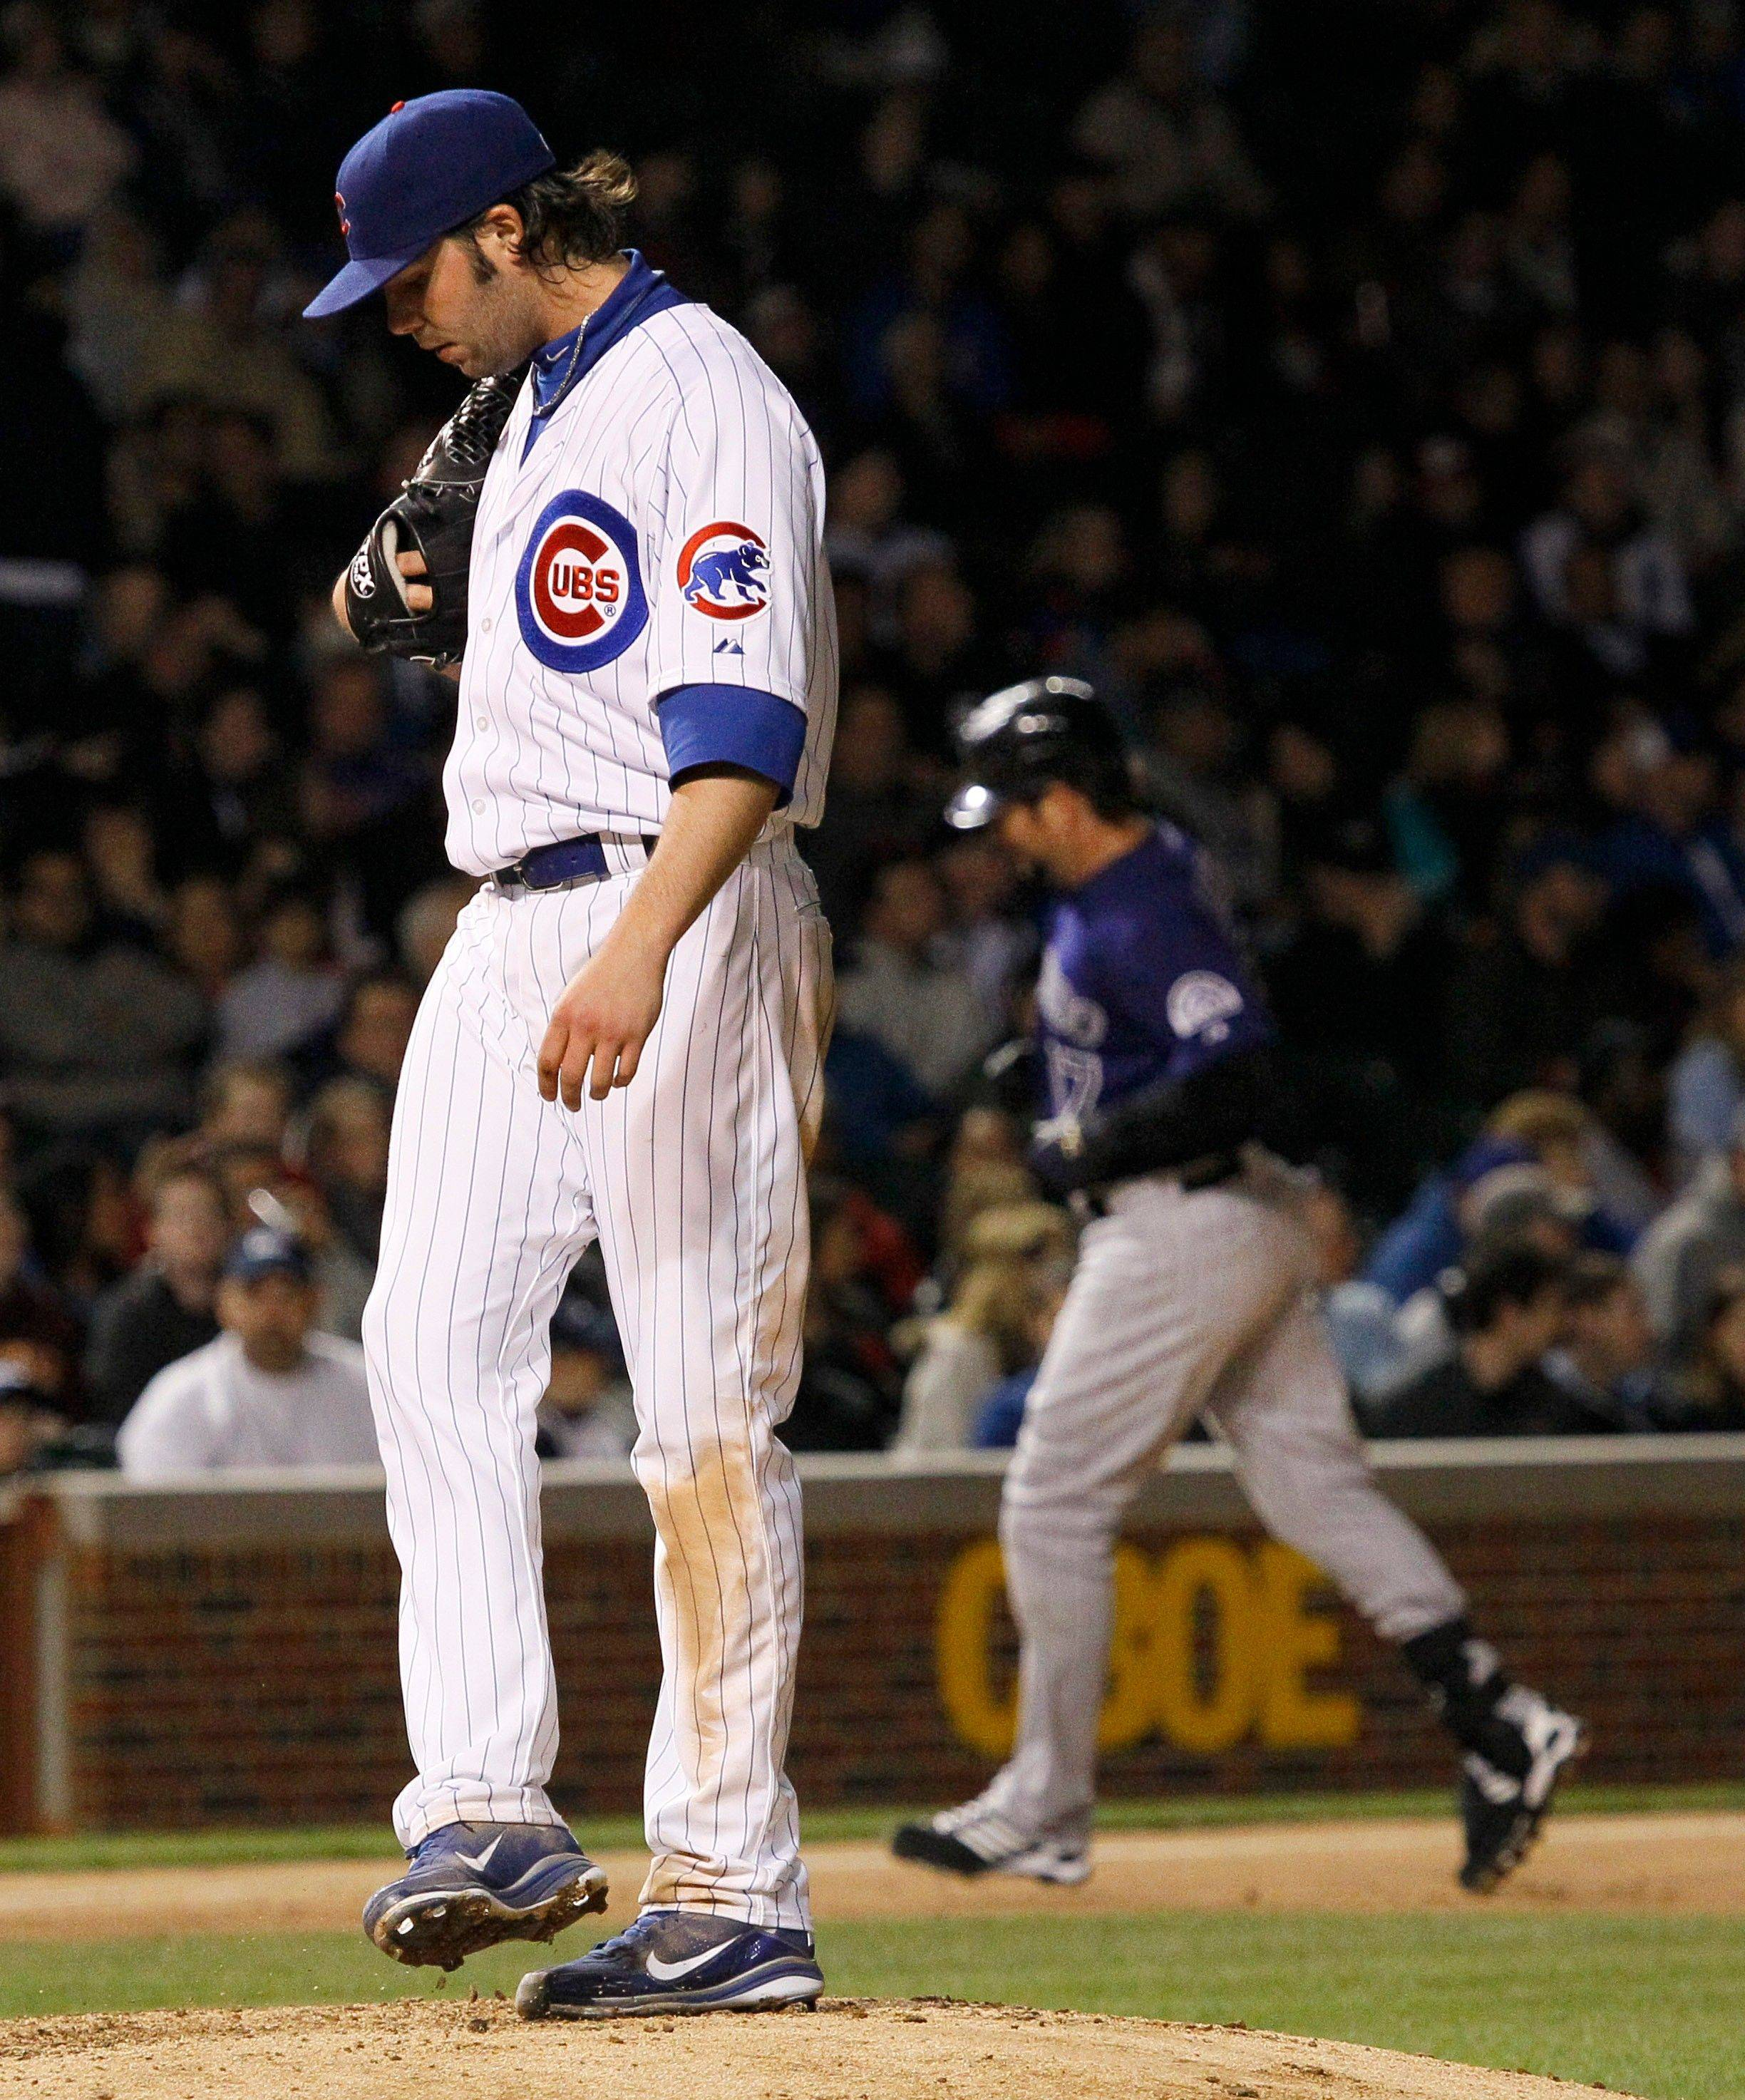 Cubs fifth starter's spot remains a big headache